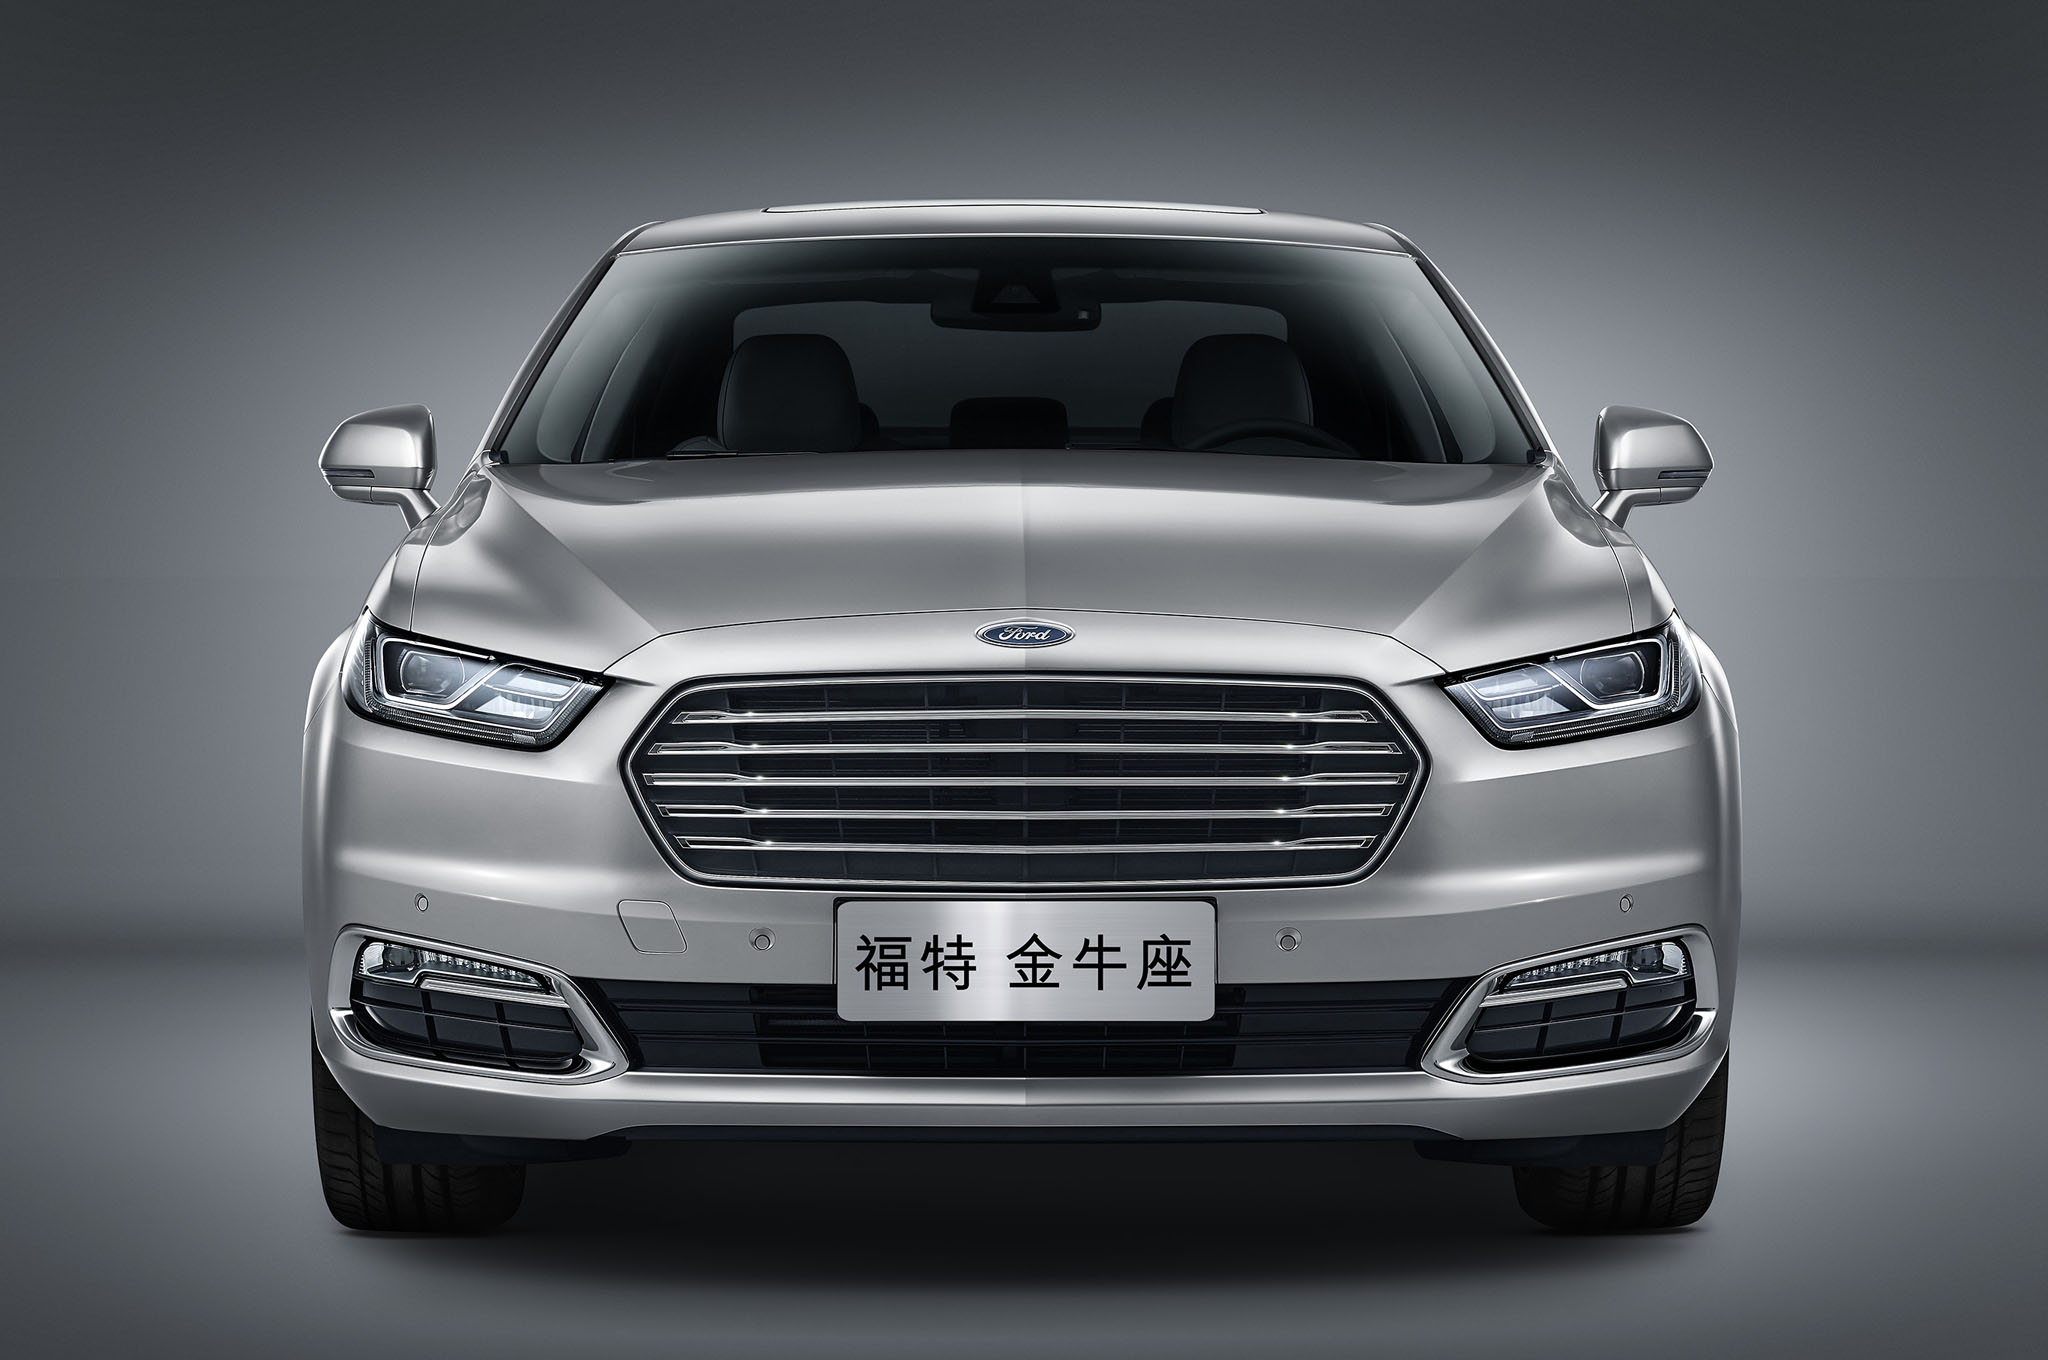 Cool Facts About The Chinese Market  Ford Taurus